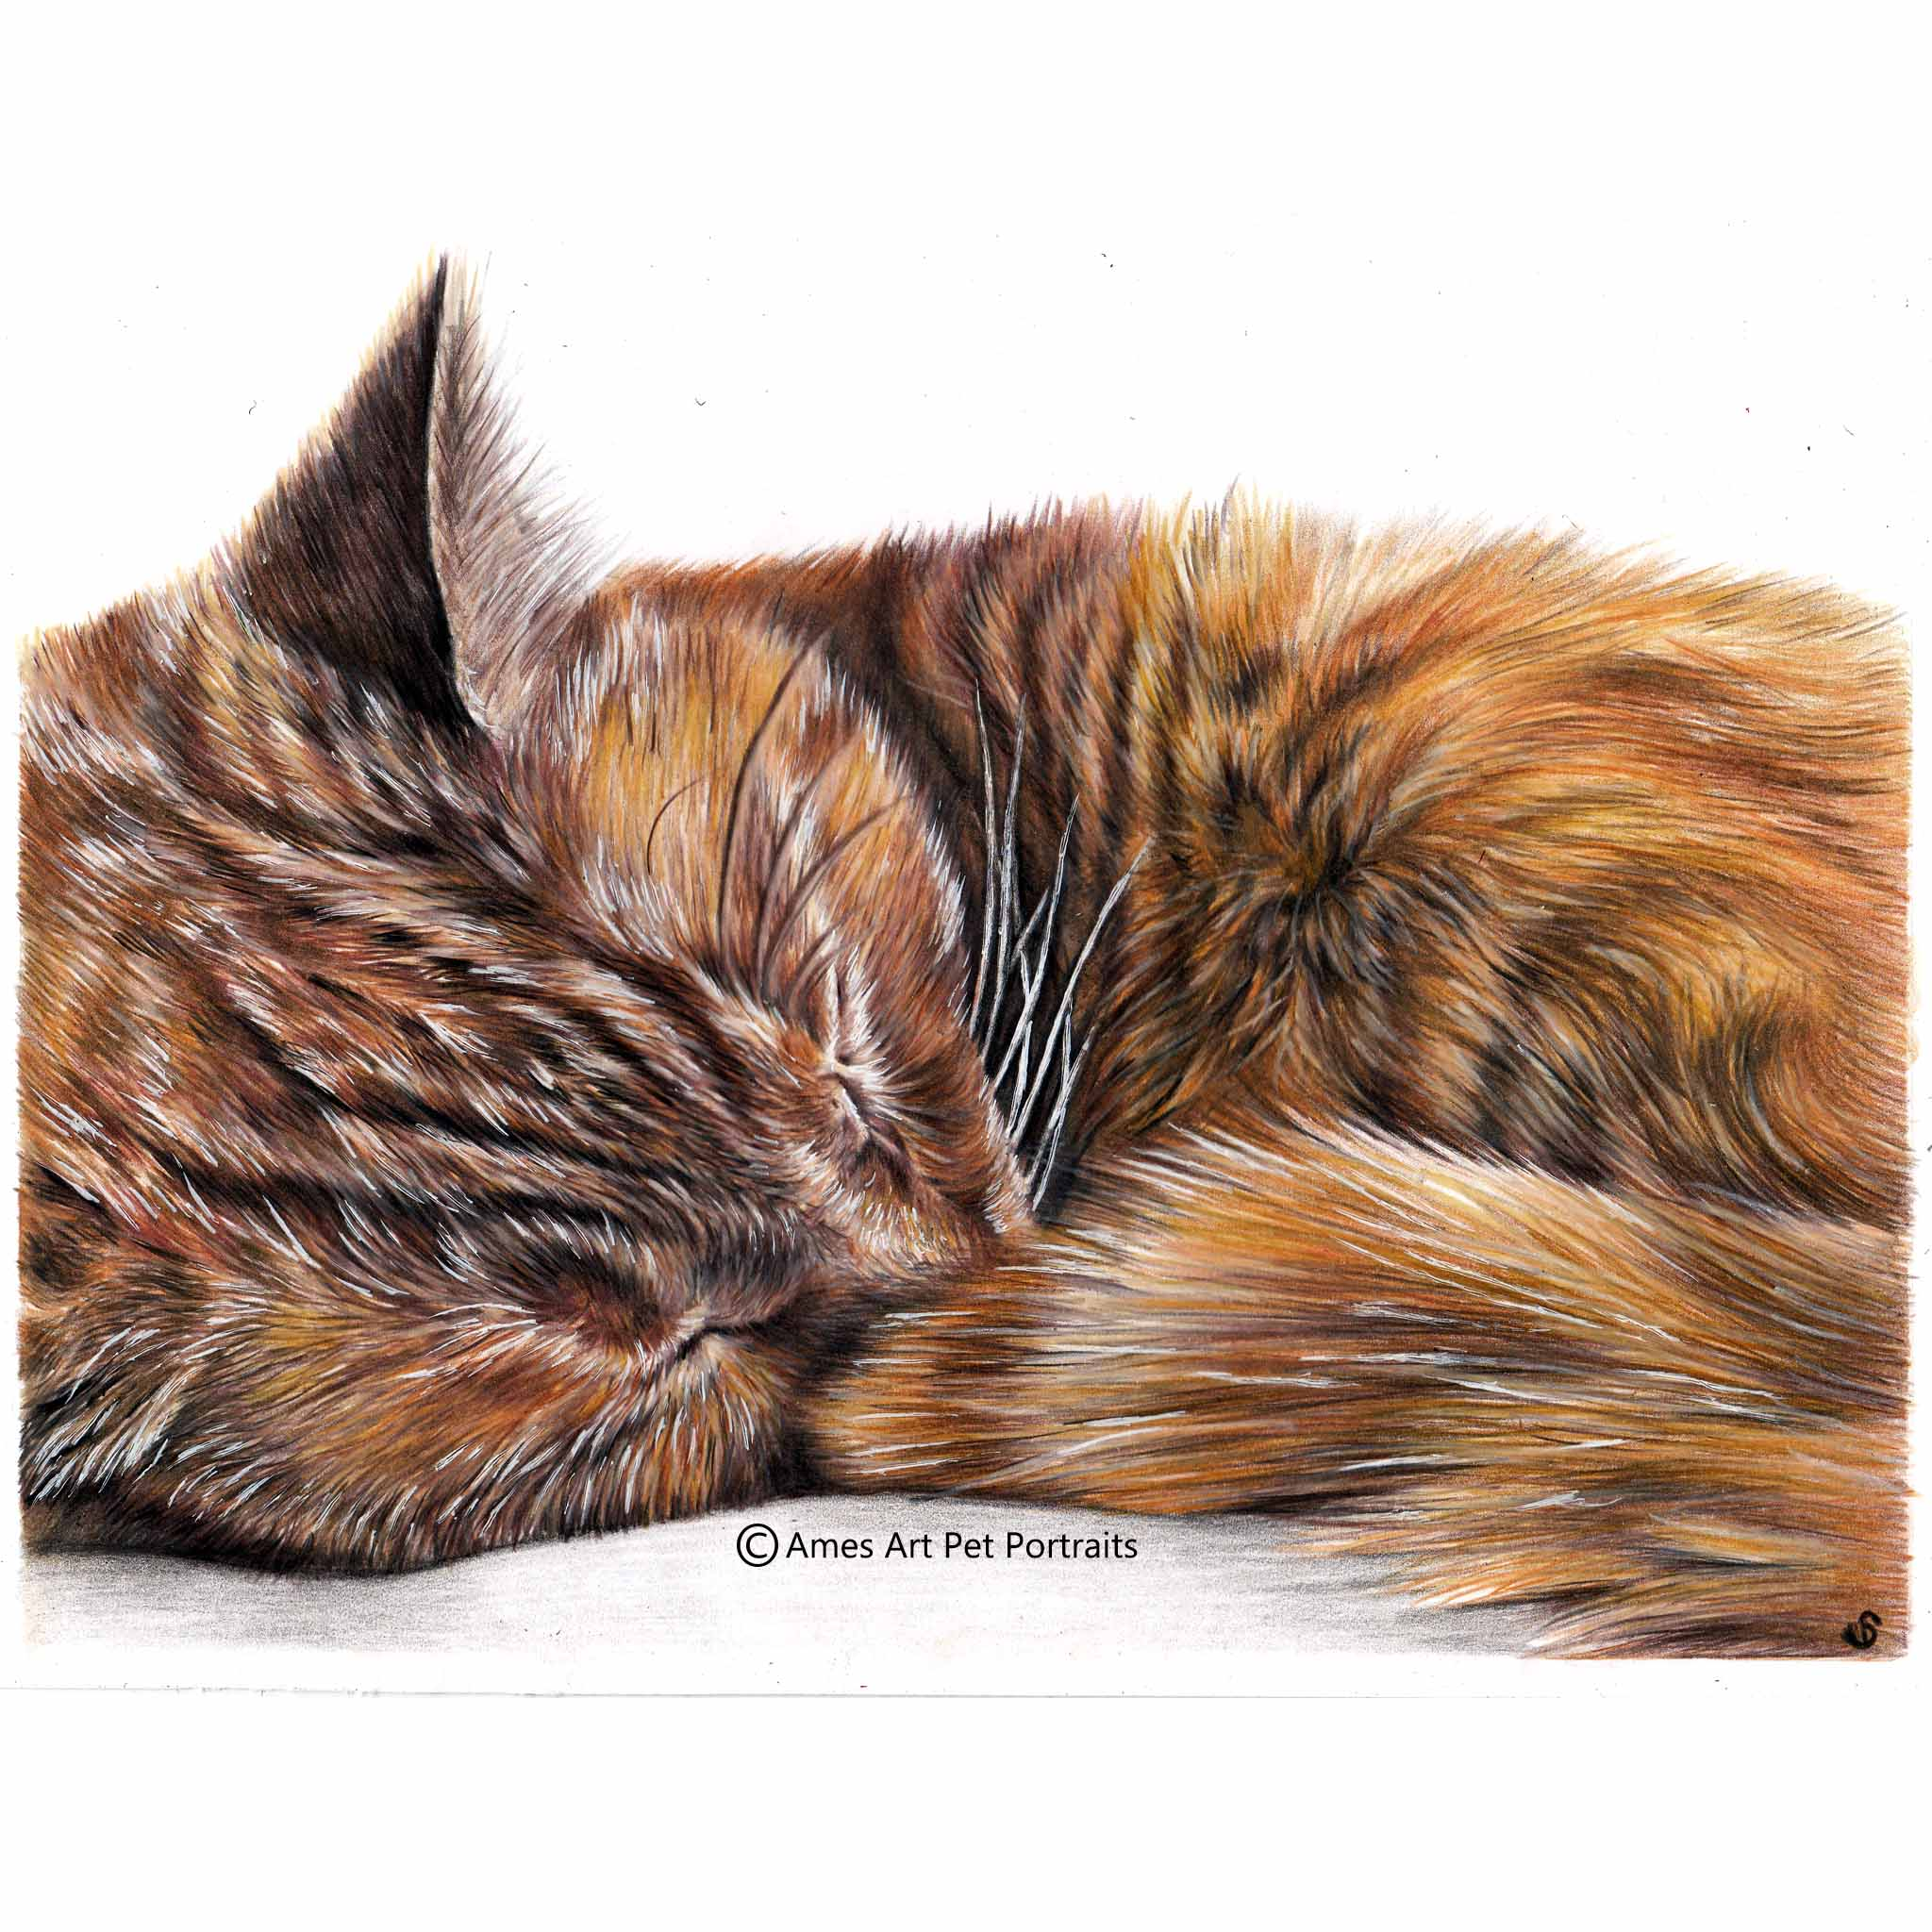 'Pee Wee' - USA, 8.3 x 11.7 inches, 2018, Colour Pencil Cat Portrait by Sema Martin